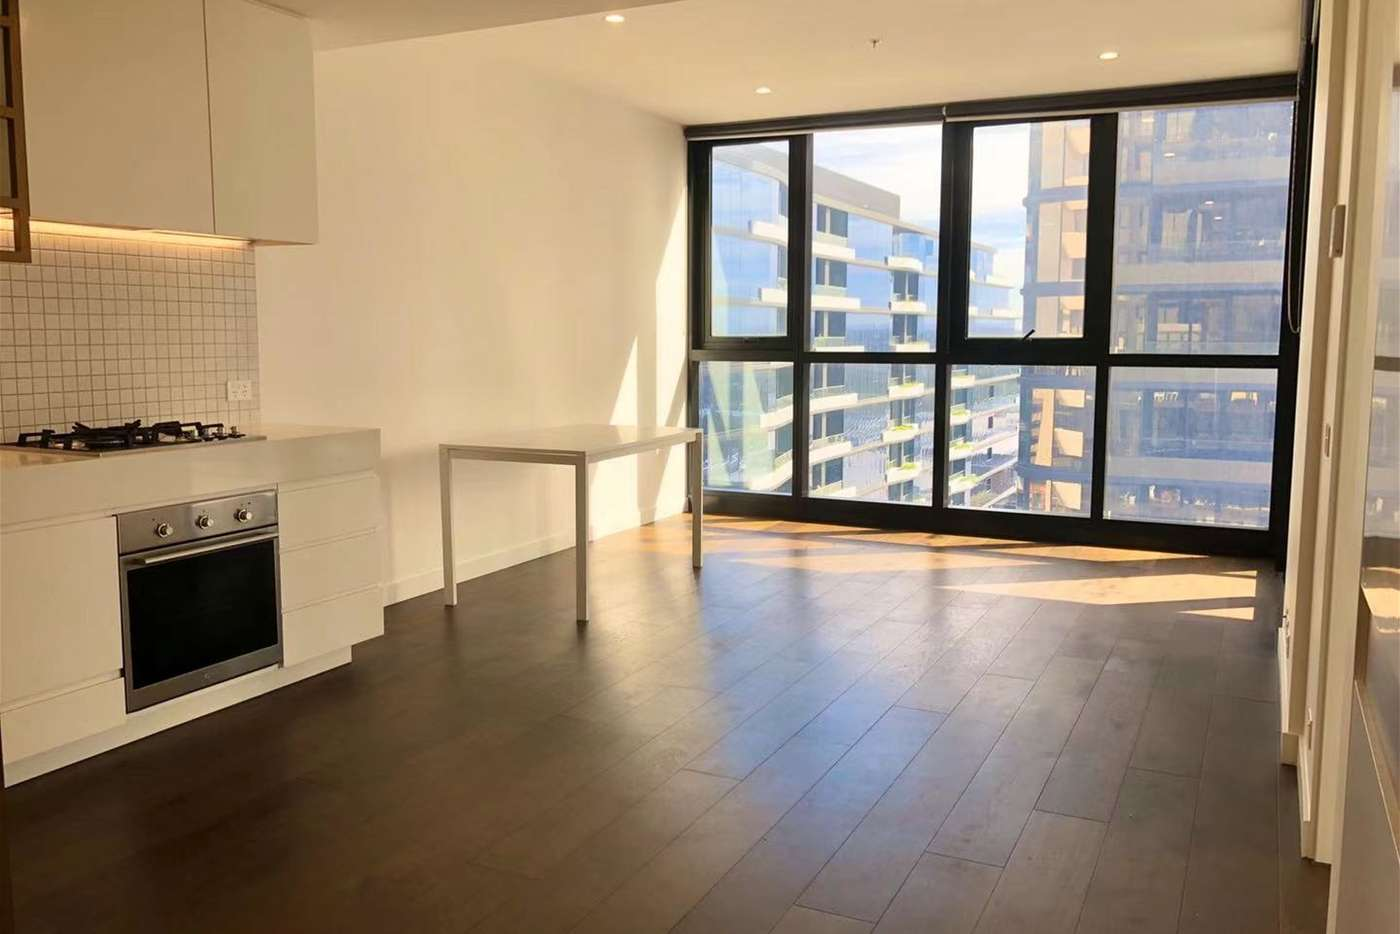 Main view of Homely apartment listing, 1005/52-54 o'sullivan road, Glen Waverley VIC 3150